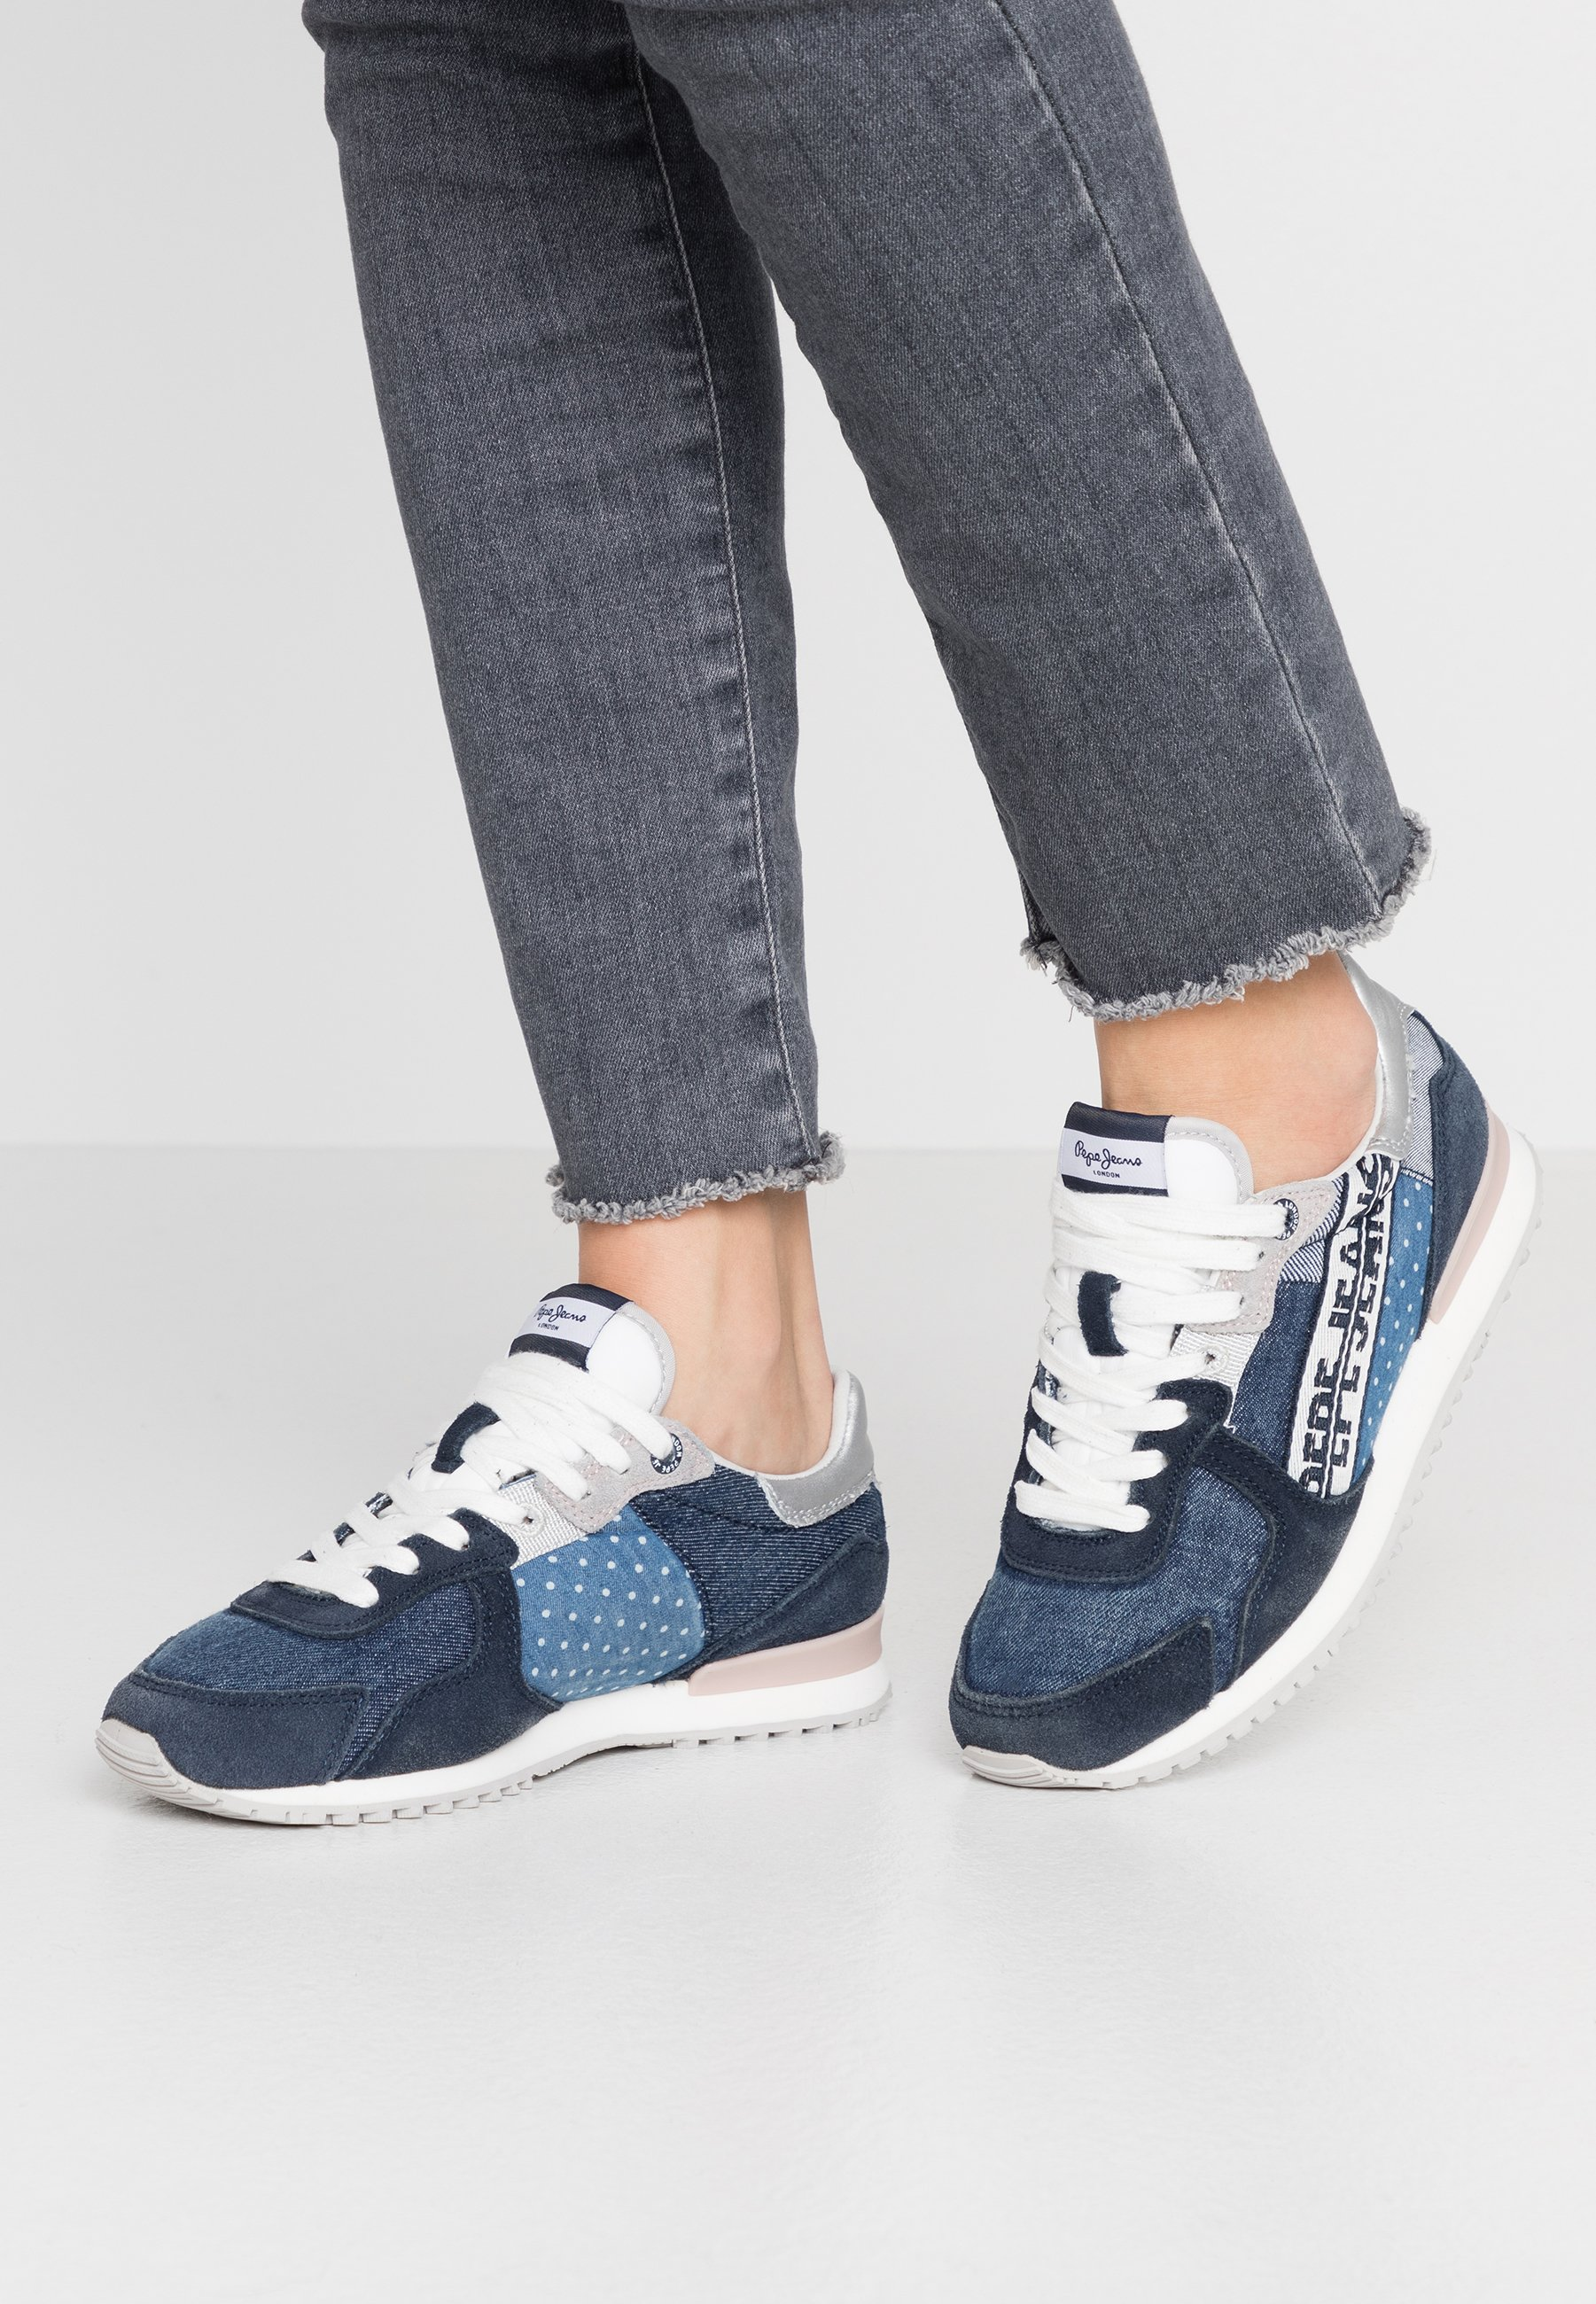 Caldo Scarpe da Donna Pepe Jeans TINKER TAPE WOMAN Sneakers basse dark denim